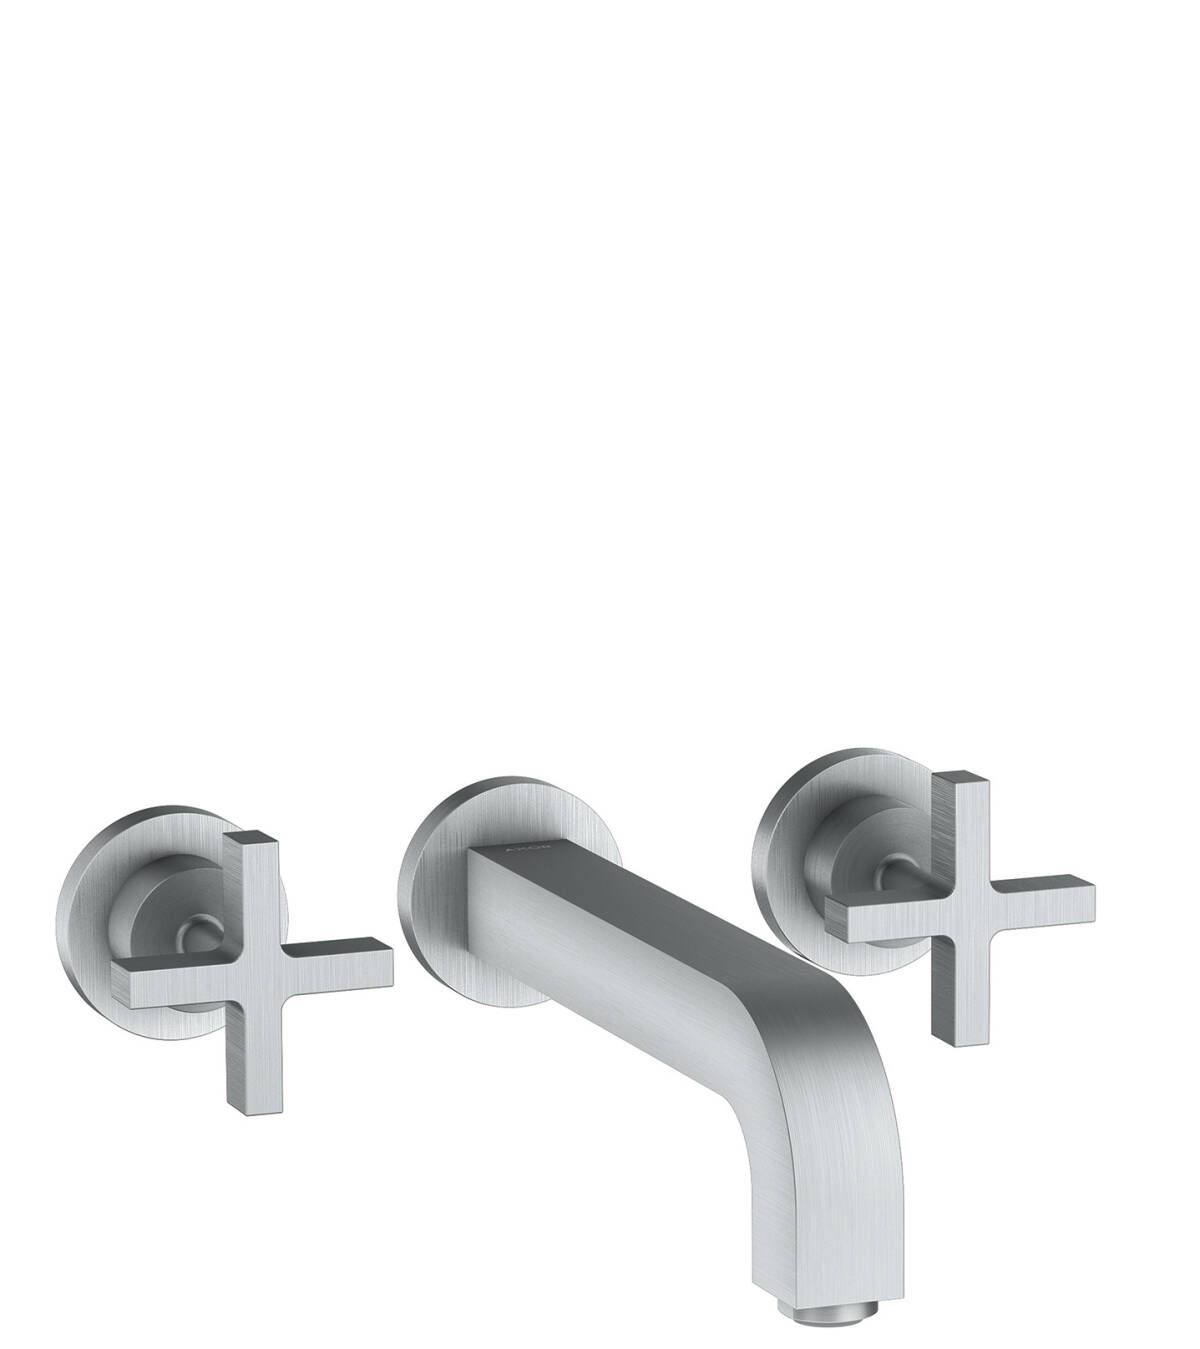 3-hole basin mixer for concealed installation wall-mounted with spout 222 mm, cross handles and escutcheons, Brushed Chrome, 39143260